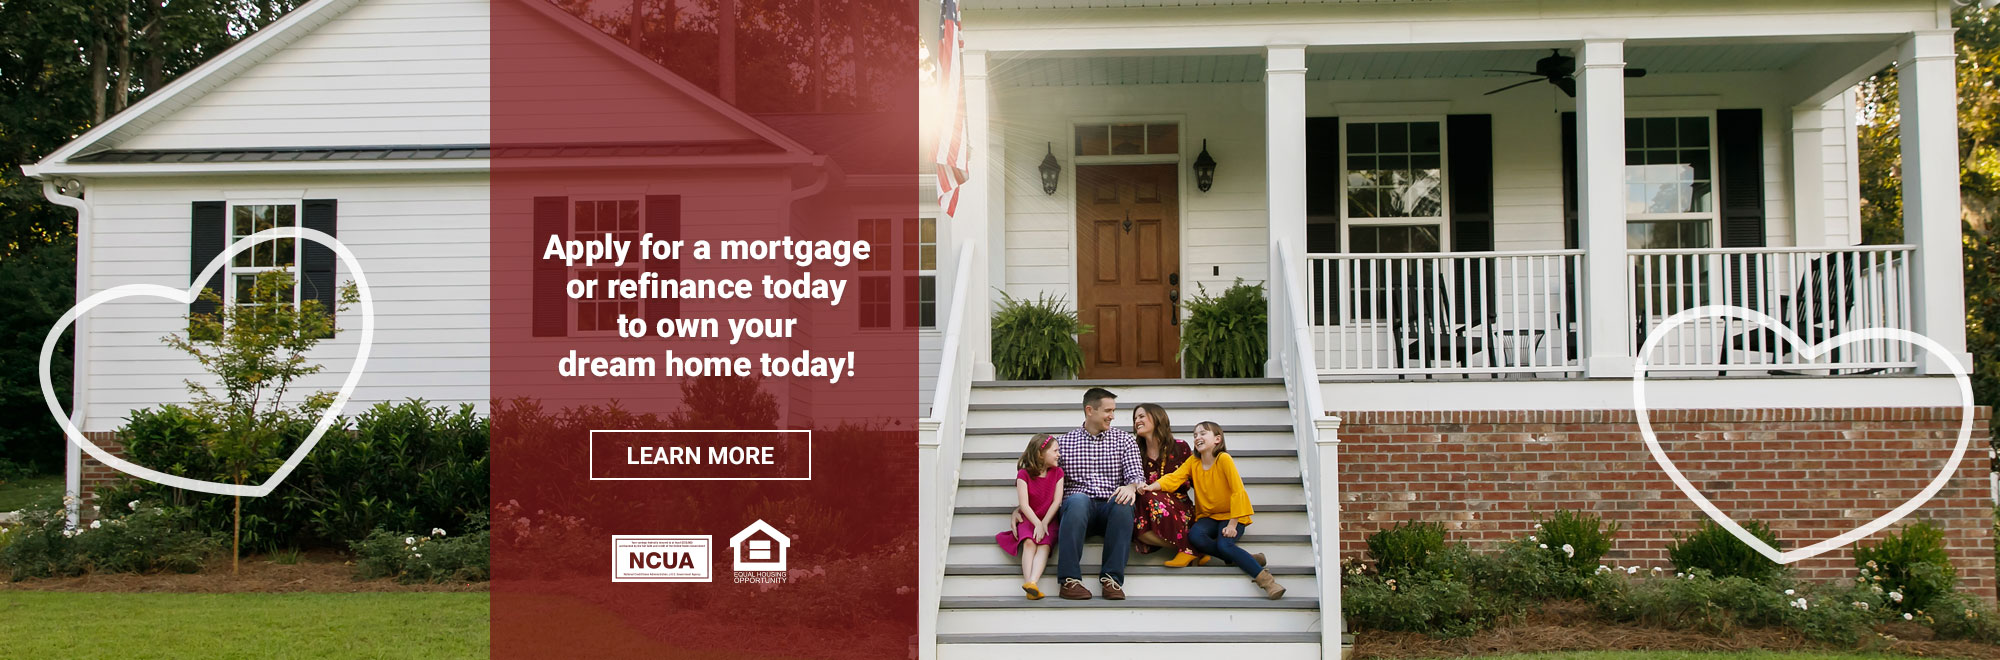 Apply for a mortgage or refinance today!